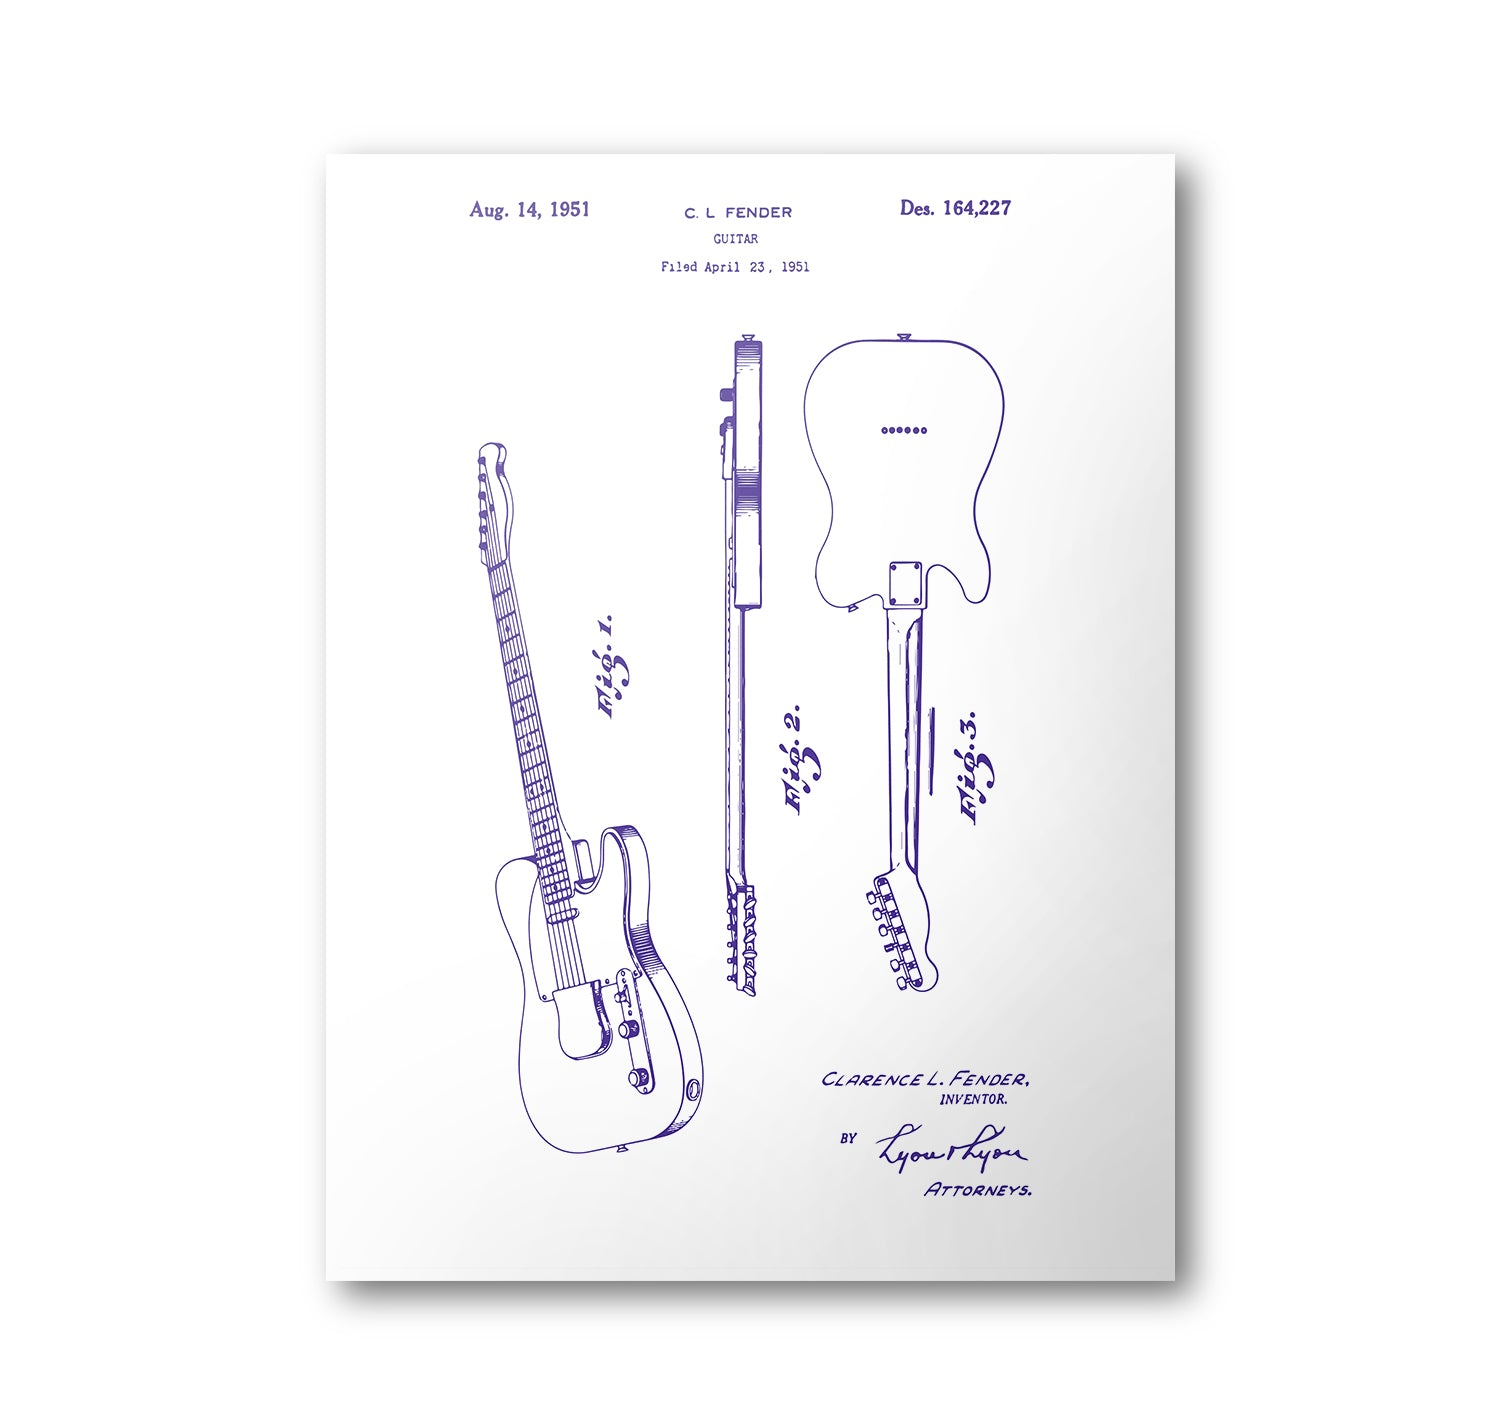 Fender Guitar Patent Poster | Guitar Patent Art | Blueprint Art | Patent Wall Art | Guitar Patent Print | Patent Art | Home Decor - National Park Life